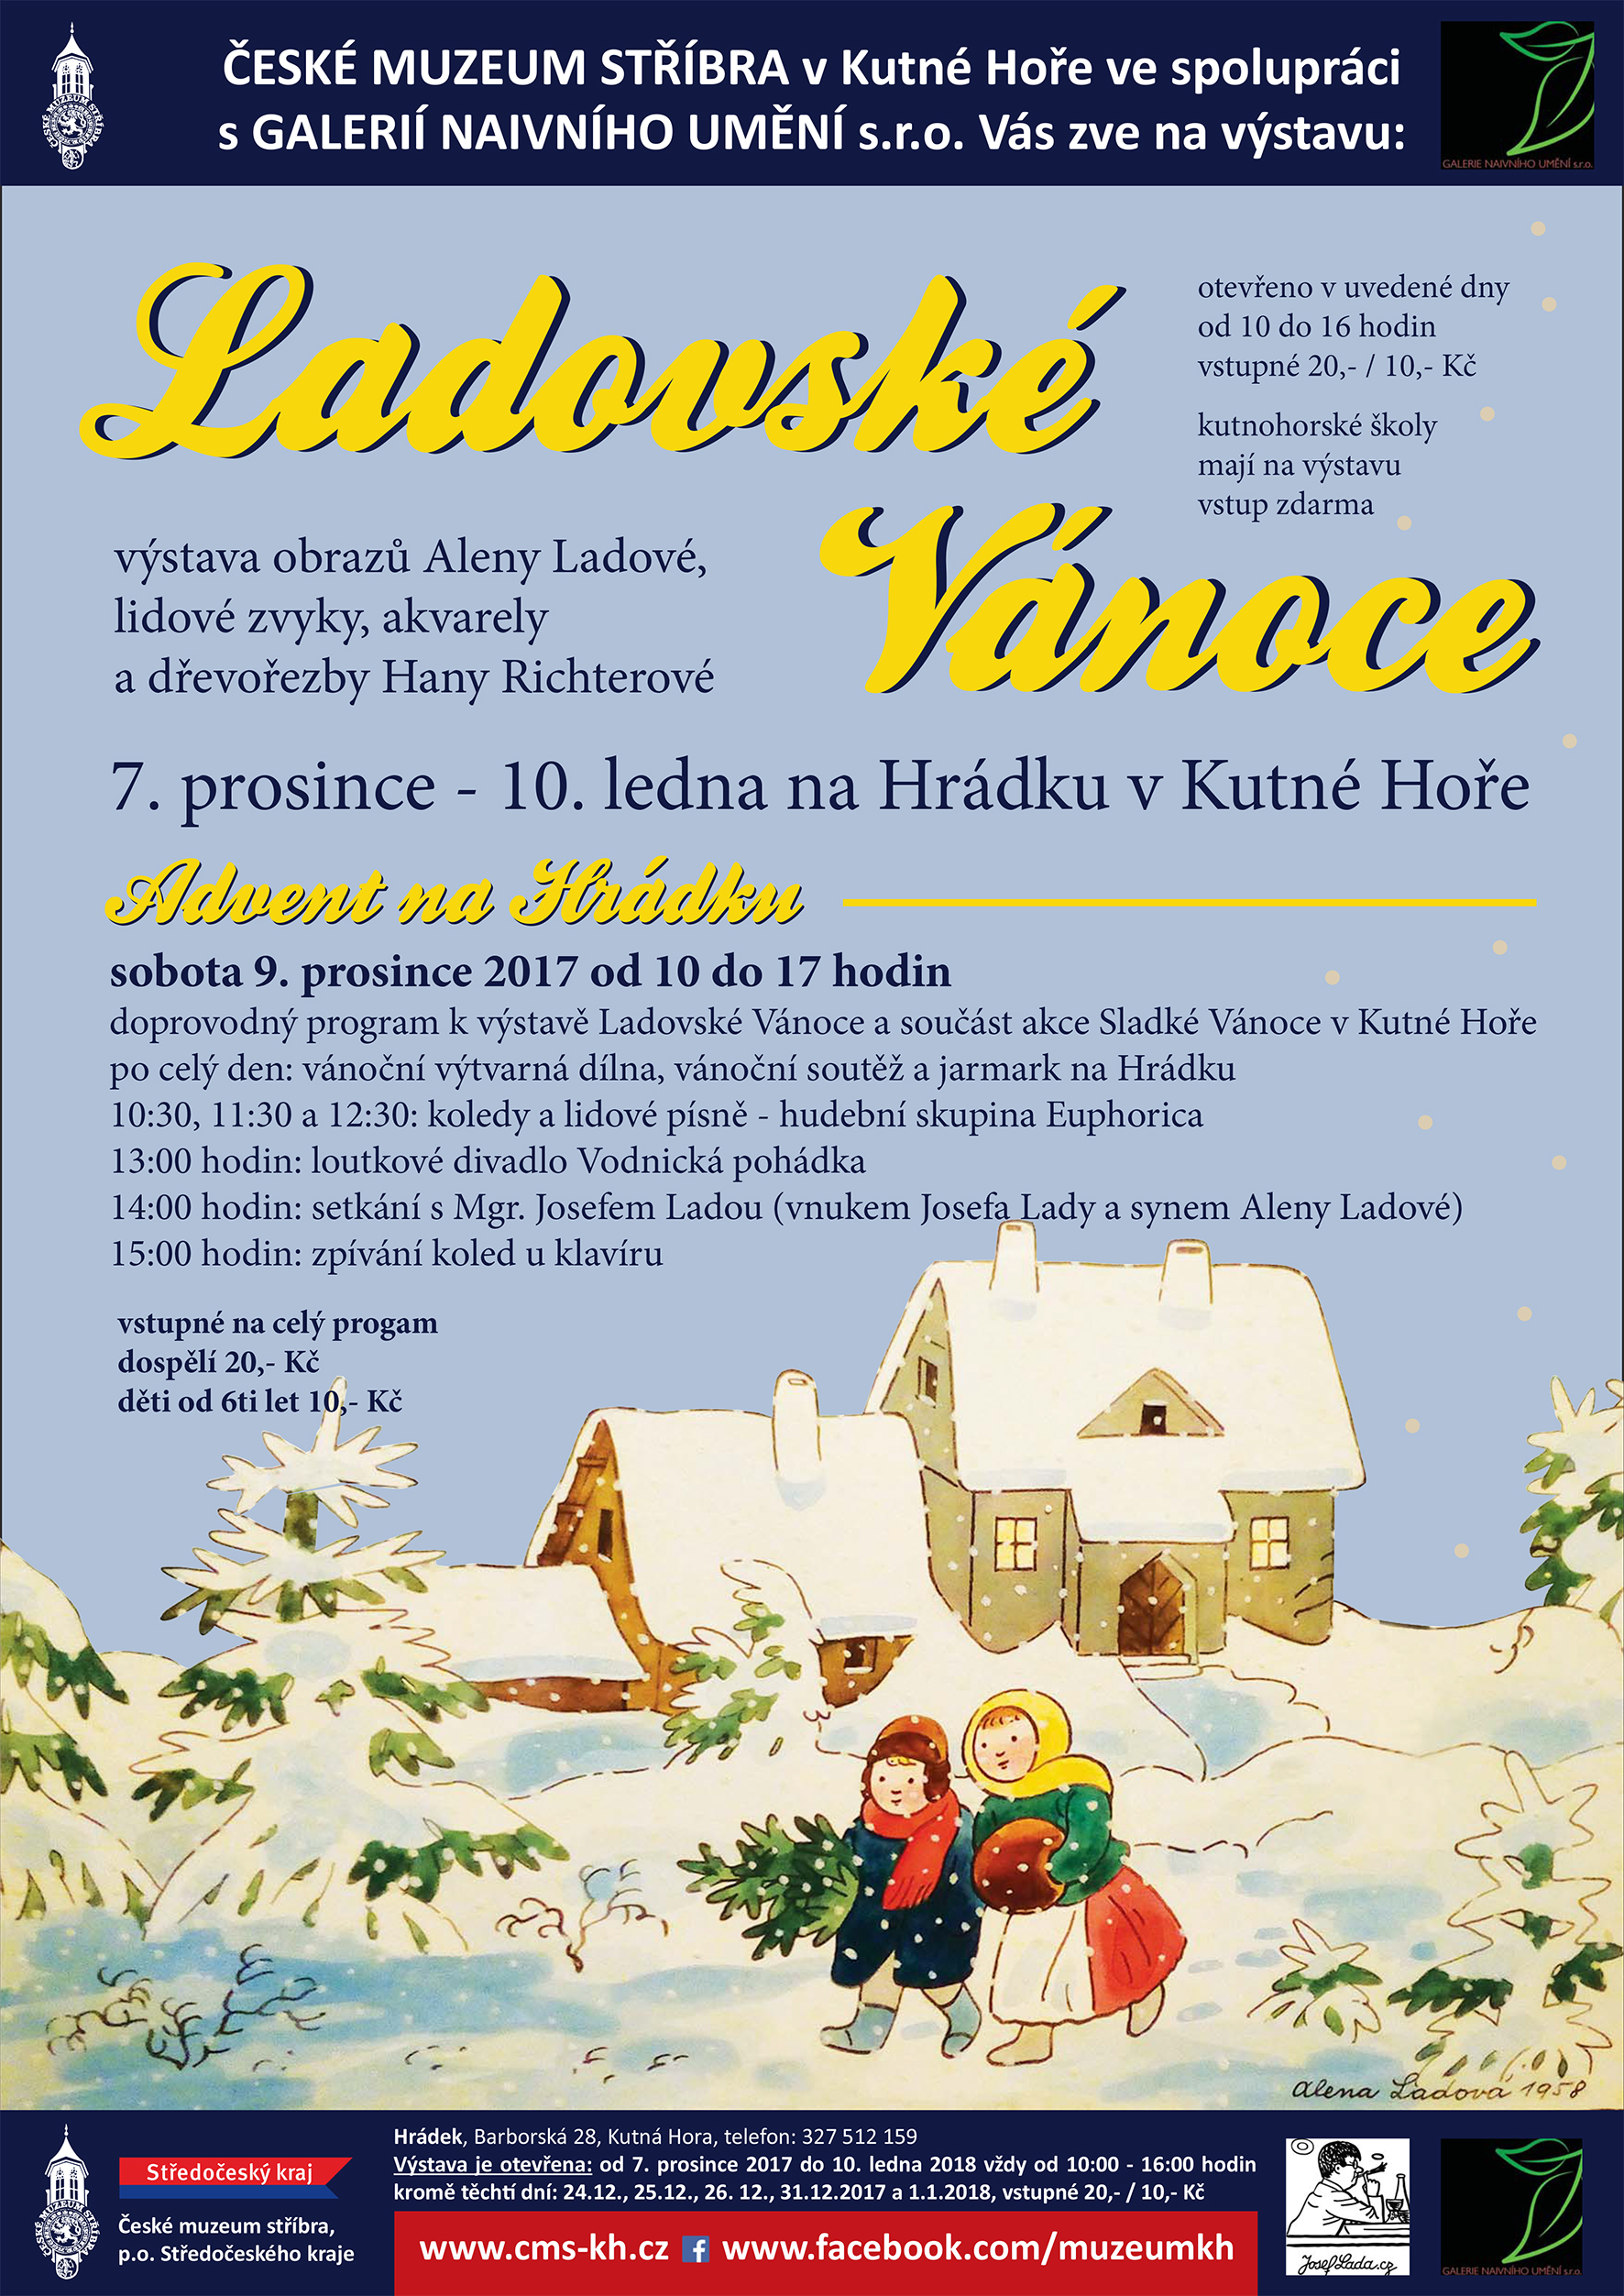 2802-plakat-vanoce-advent-ok.jpg